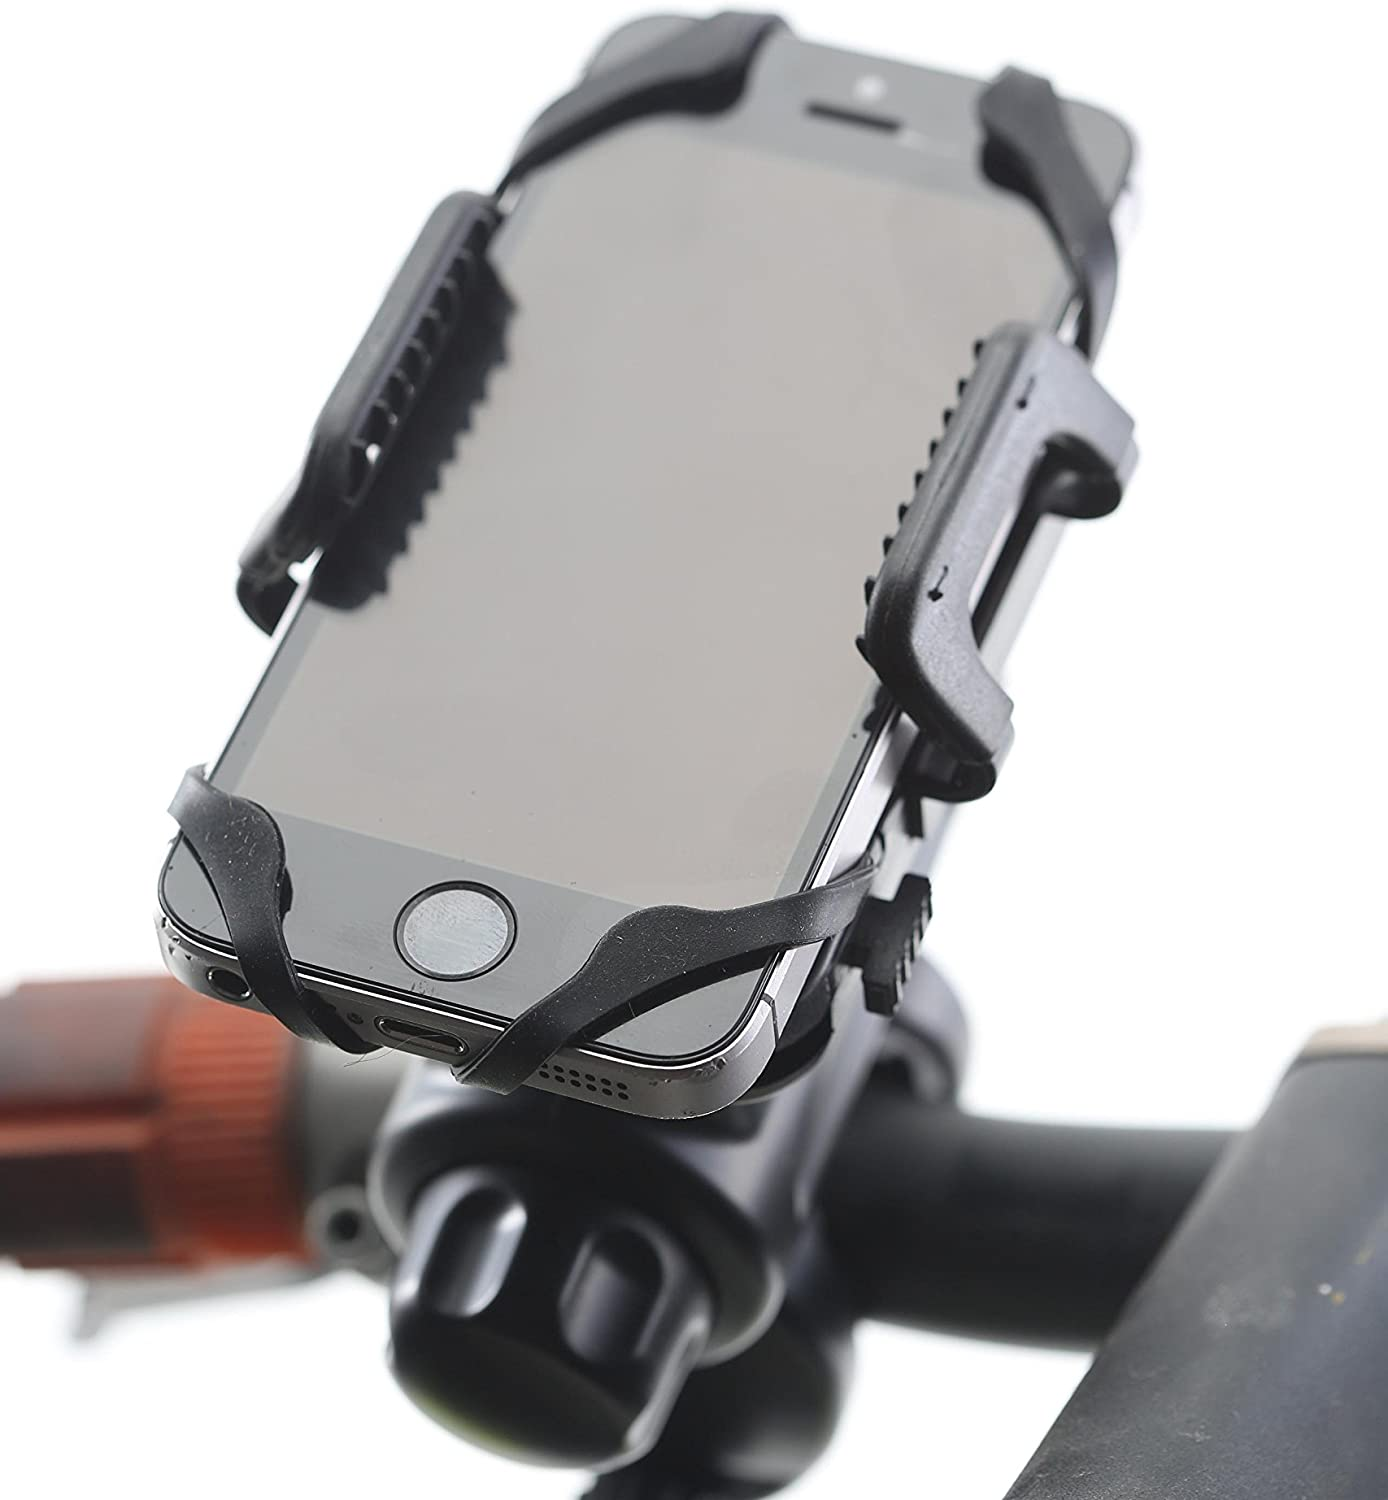 Non Moving Stationary or Rotation.Great For Using GPS /& Streaming Music Bluetooth Mount iPhone 7,8,Plus /& All Samsung Galaxy Note /& Smartphones Best Universal Bicycle /& Motorcycle Cell Phone Holder